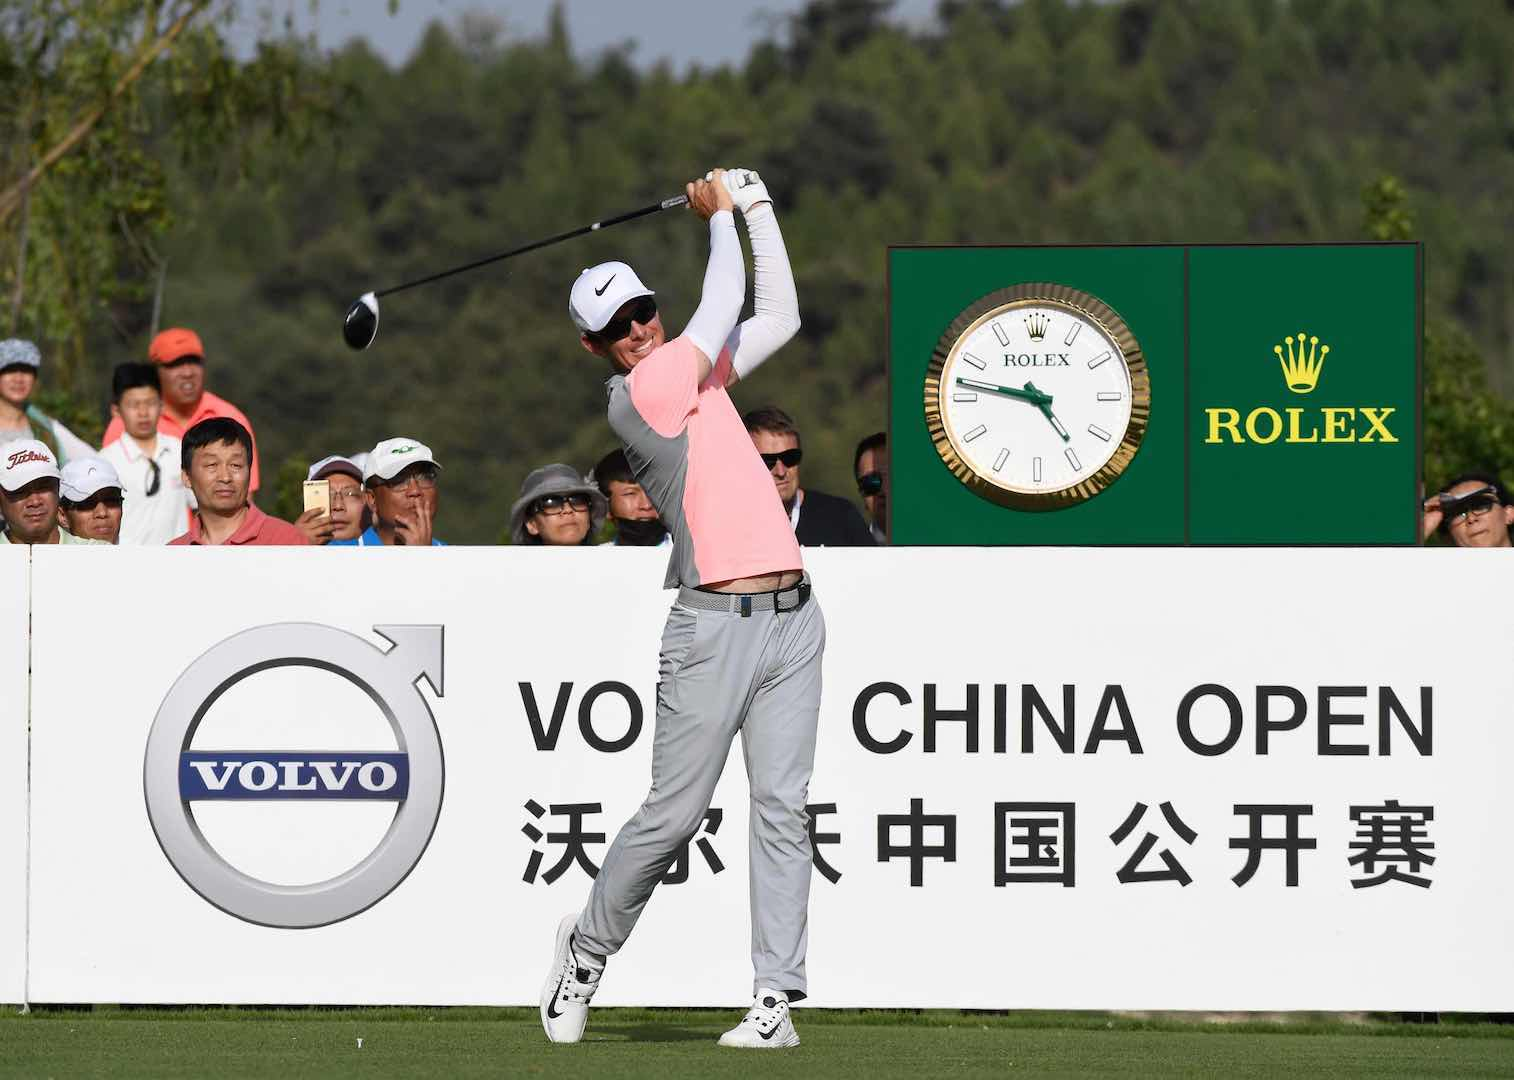 Dylan Frittelli leads in China